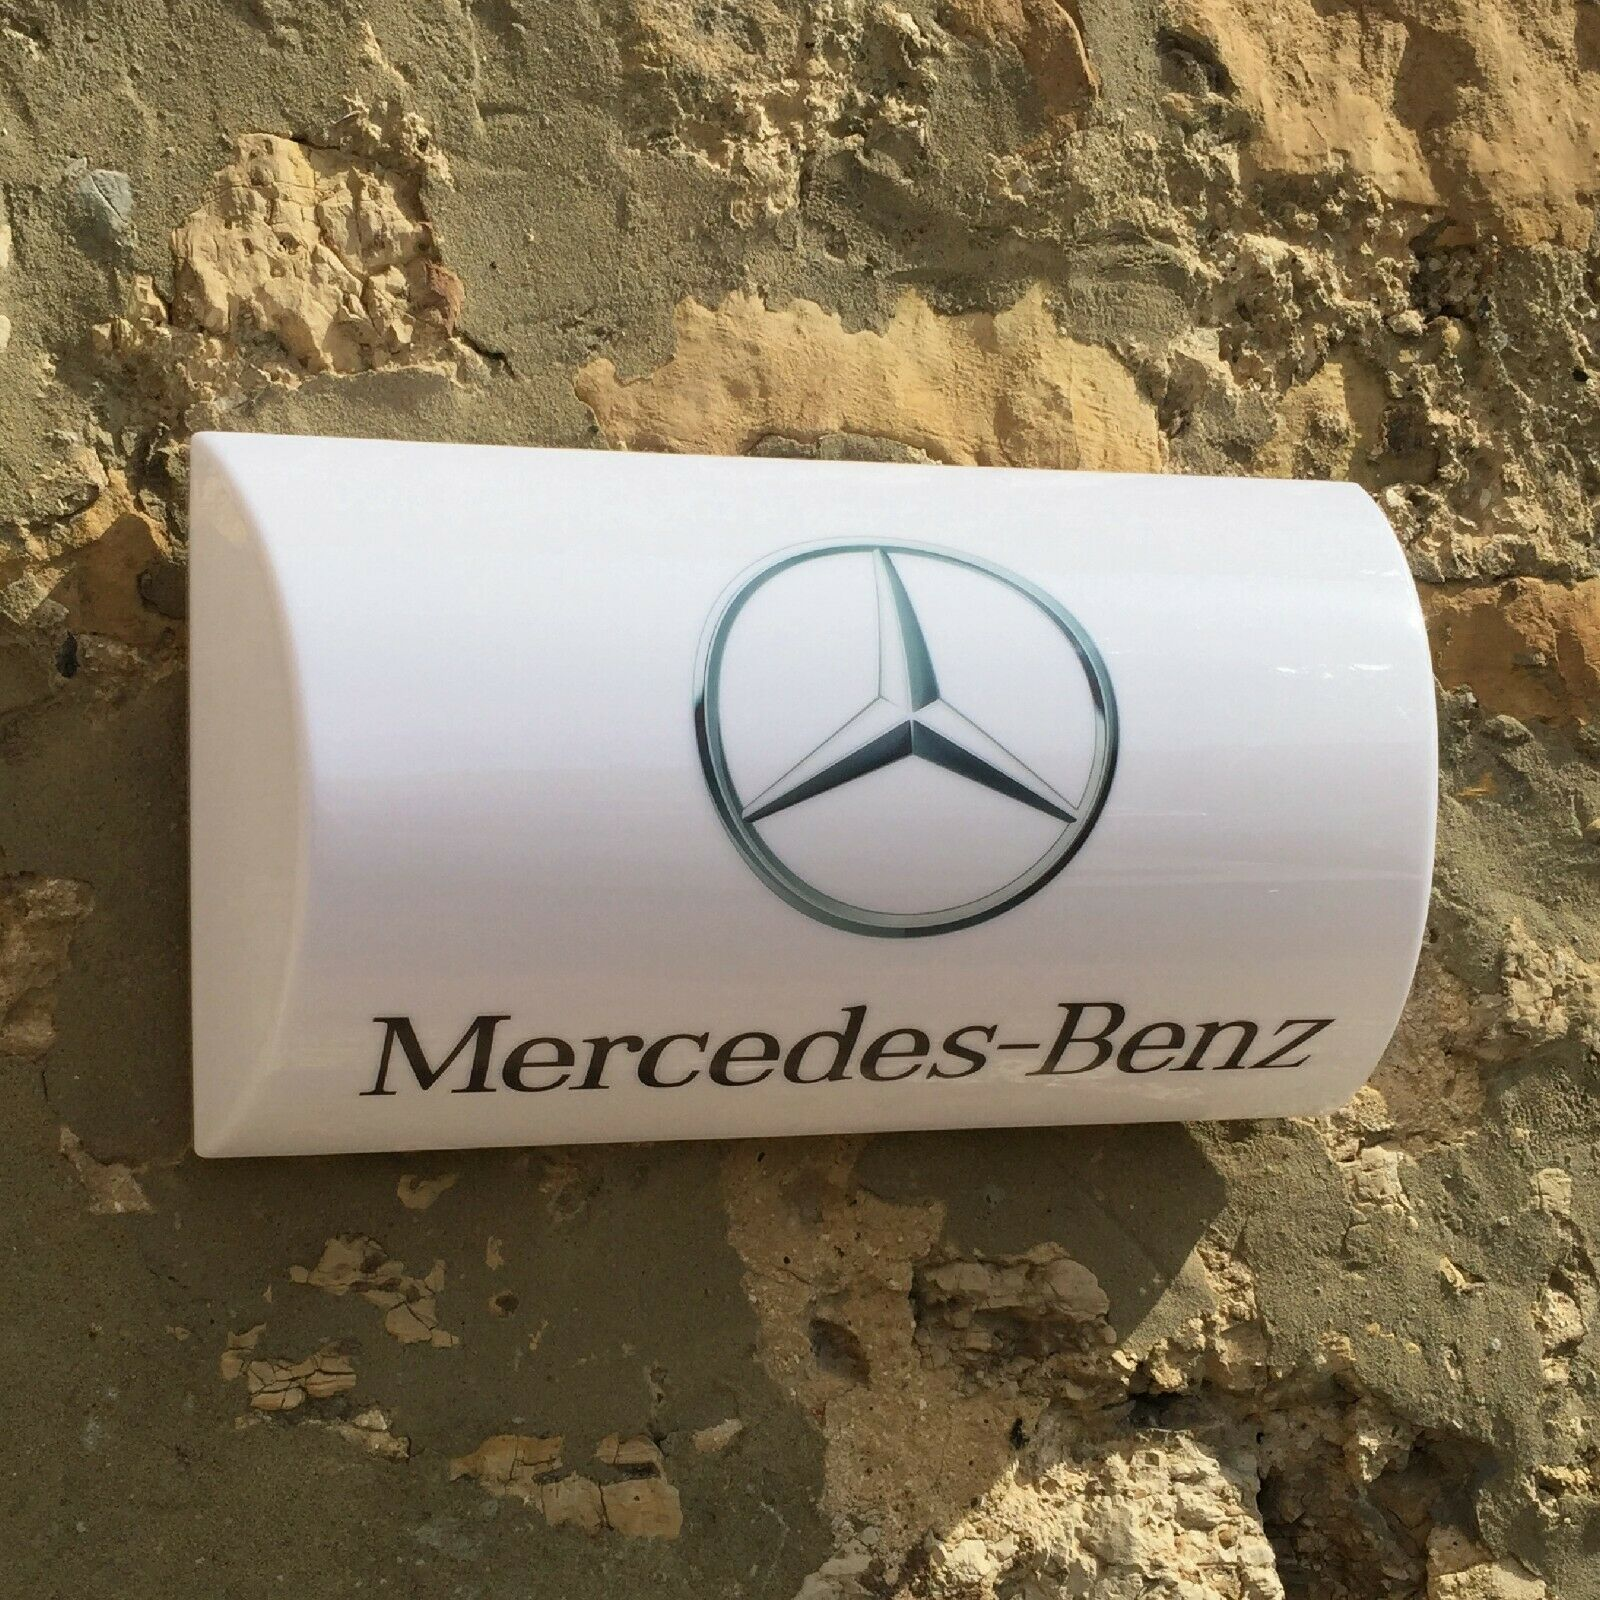 MERCEDES BENZ LED ILLUMINATED LIGHT UP GARAGE SIGN PETROL GASOLINE GAS OIL CAR